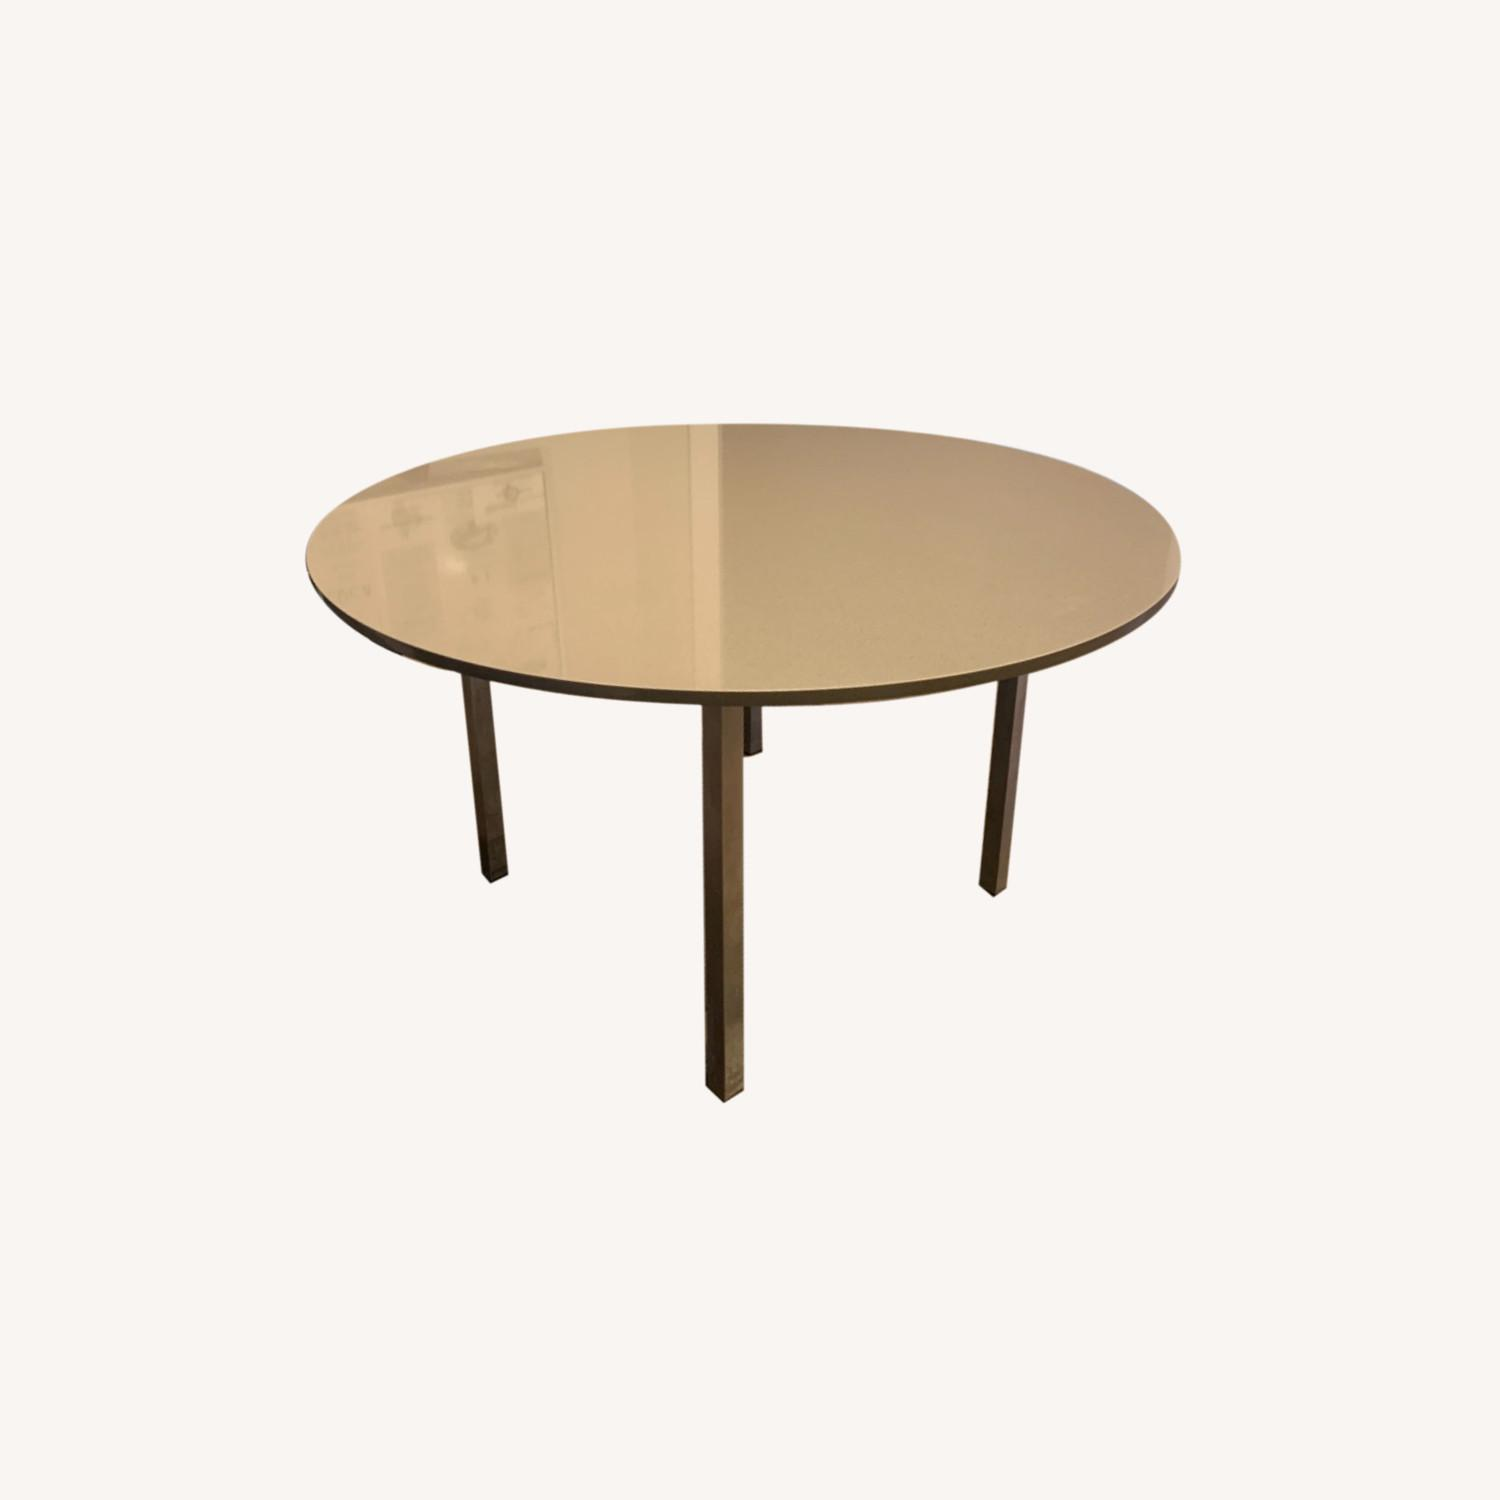 Room & Board Portica Dining or Kitchen Table - image-0